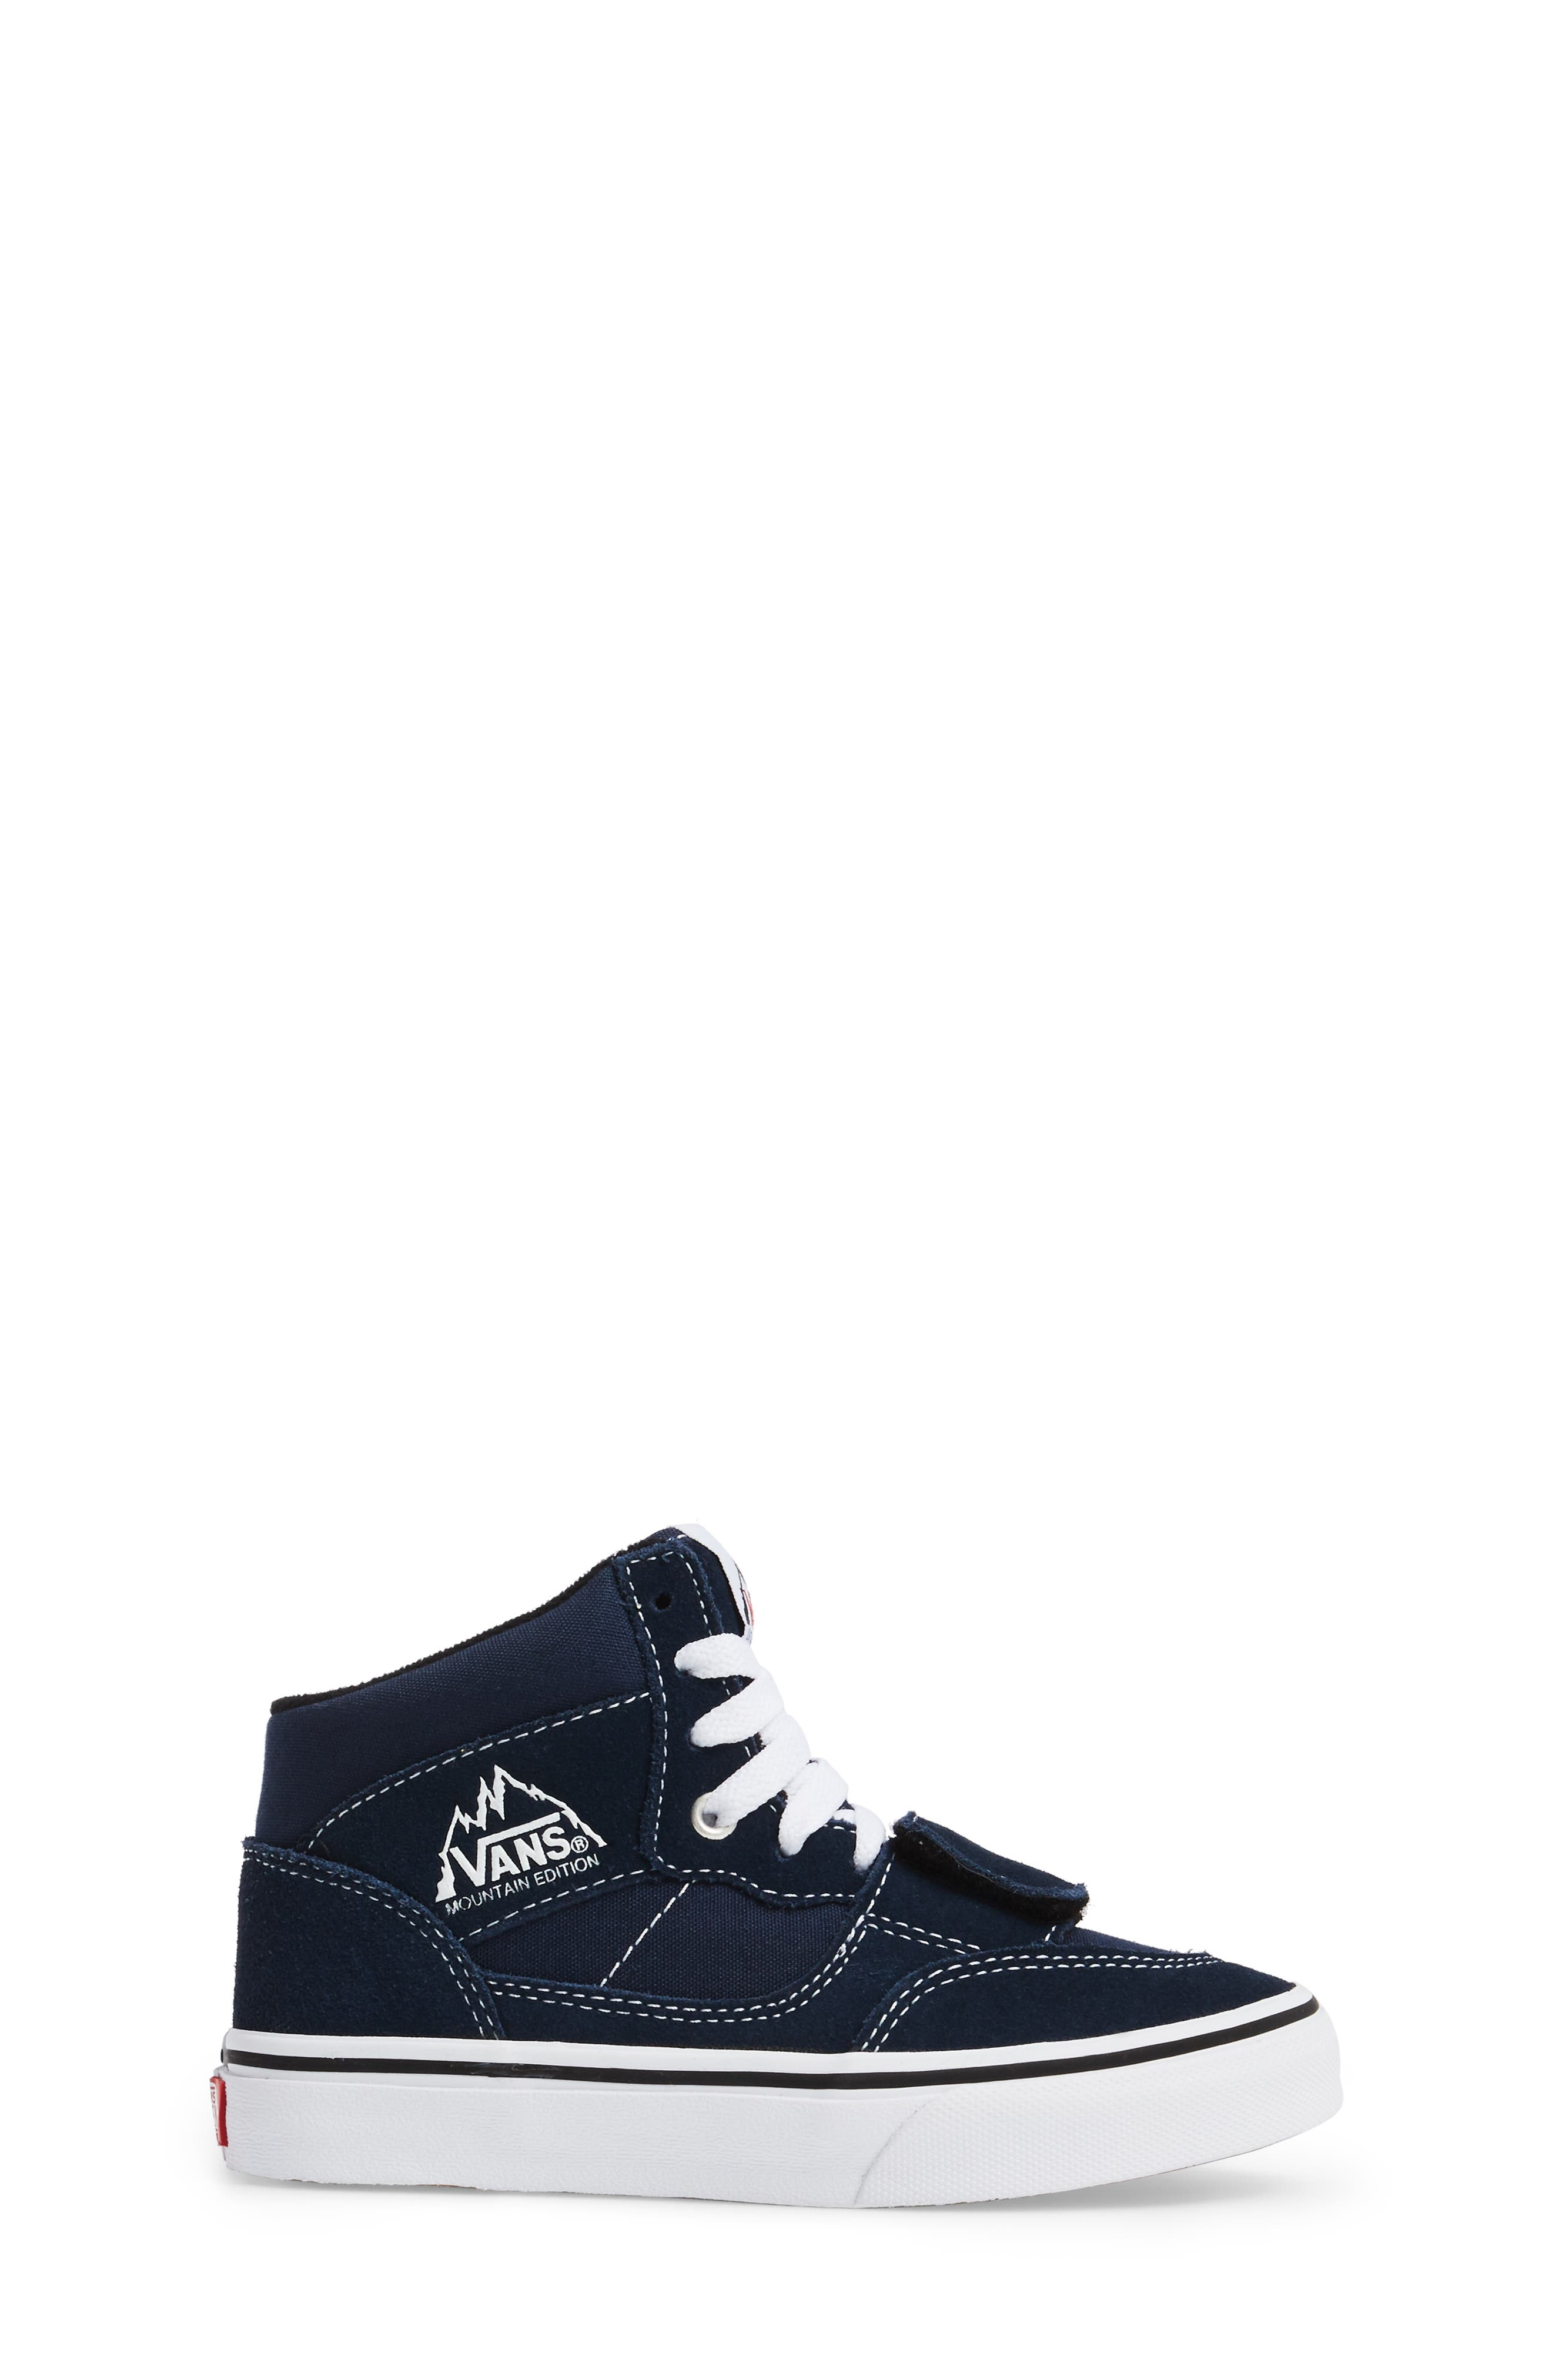 Mountain Edition Mid Top Sneaker,                             Alternate thumbnail 9, color,